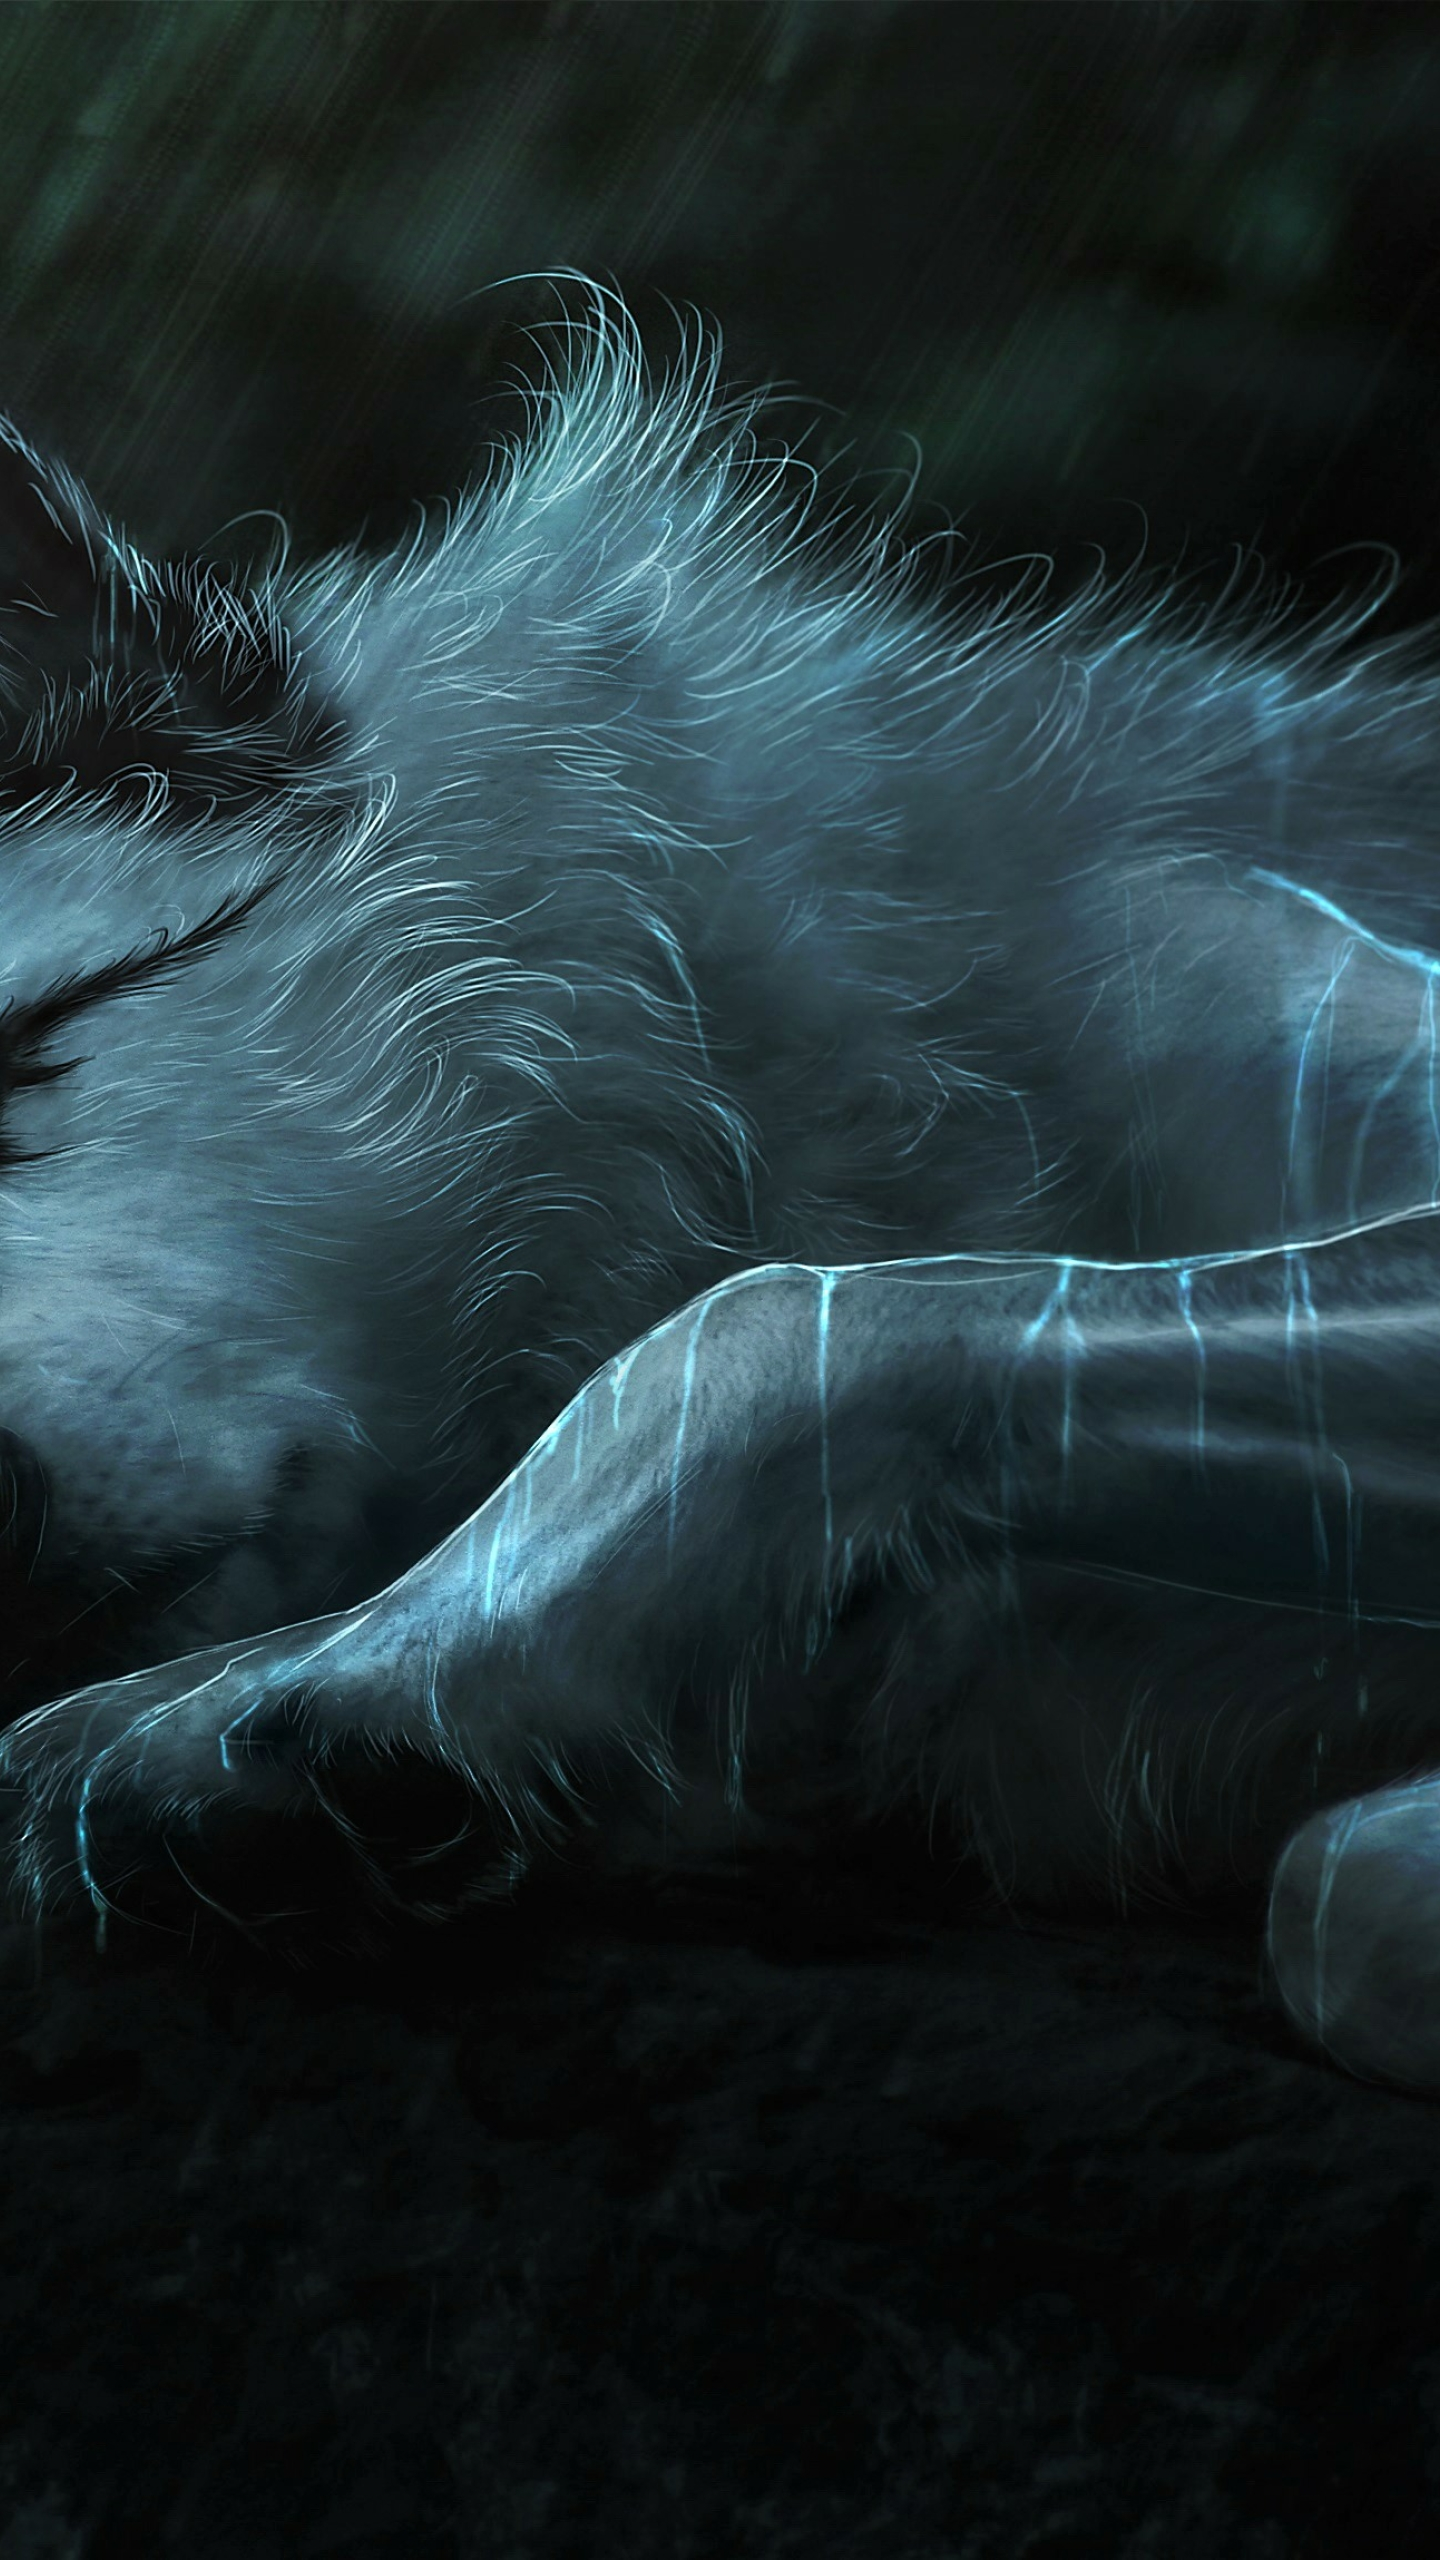 Download Fantasy Wolf Painting 320x240 Resolution, HD 4K